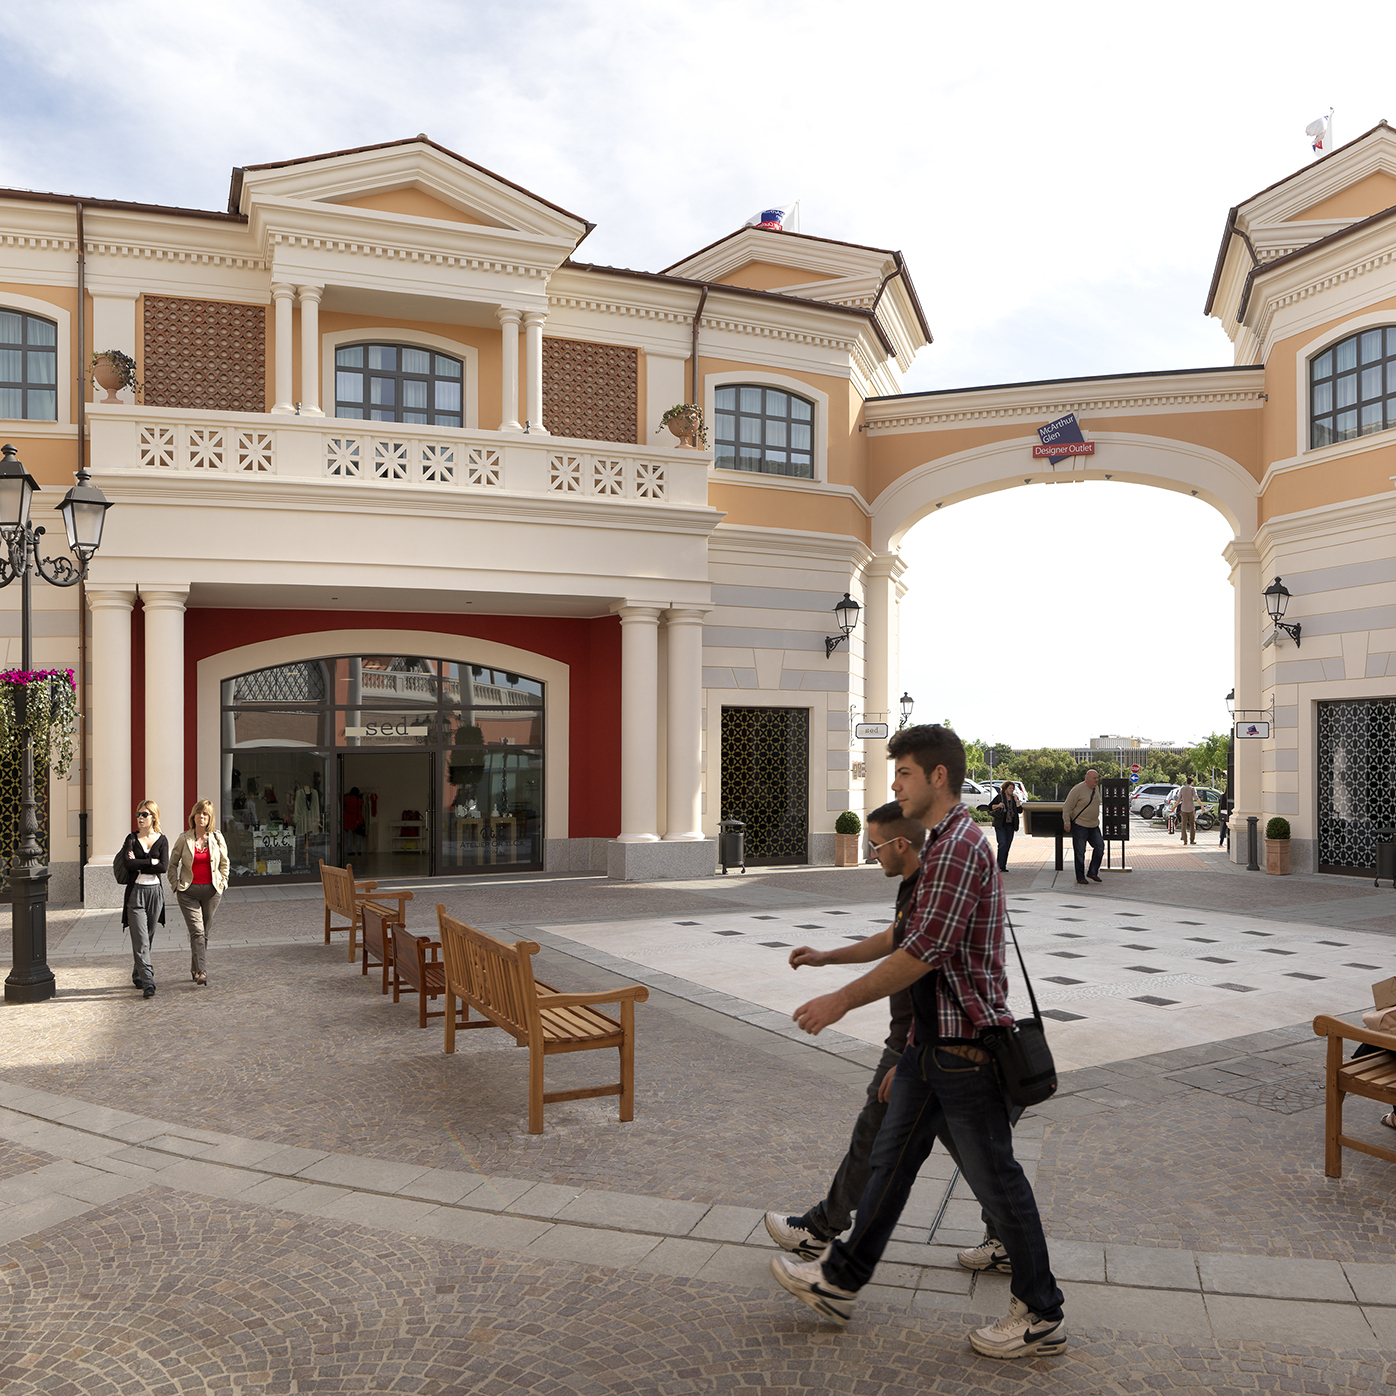 Designer Outlet Center Castel Romano, Rome